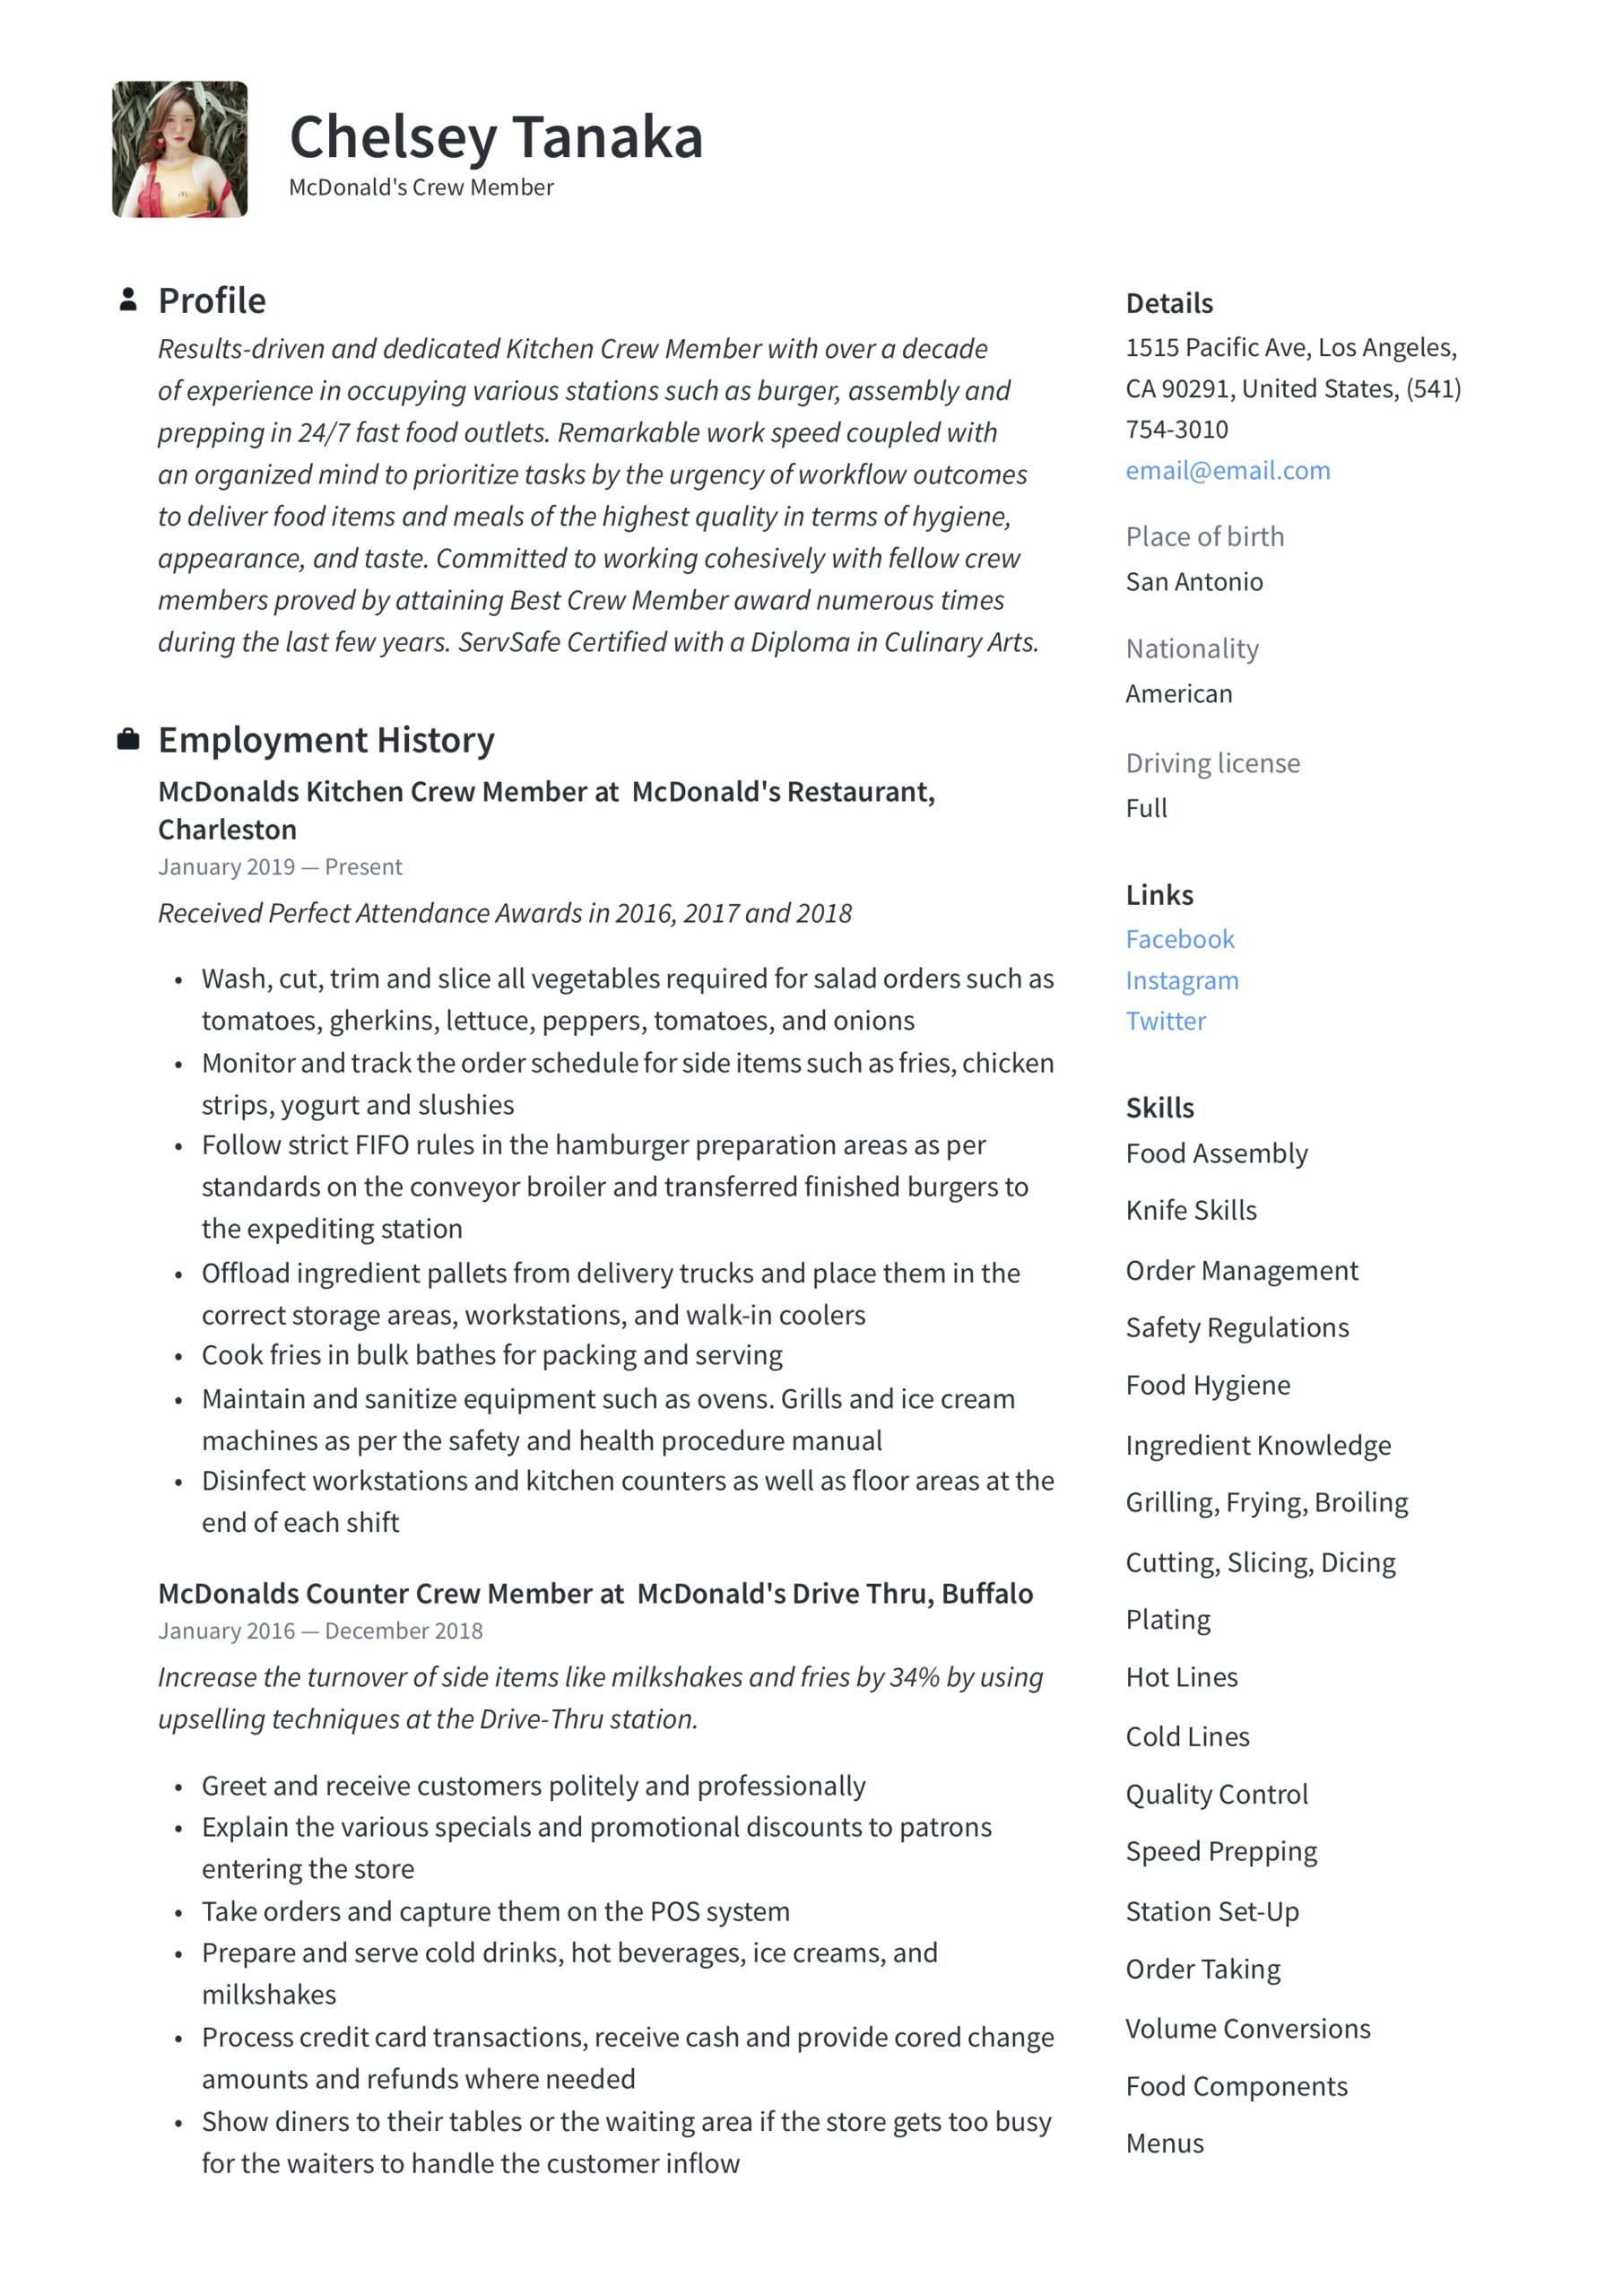 mcdonalds crew member resume writing guide examples job description for text format free Resume Mcdonalds Crew Member Job Description For Resume